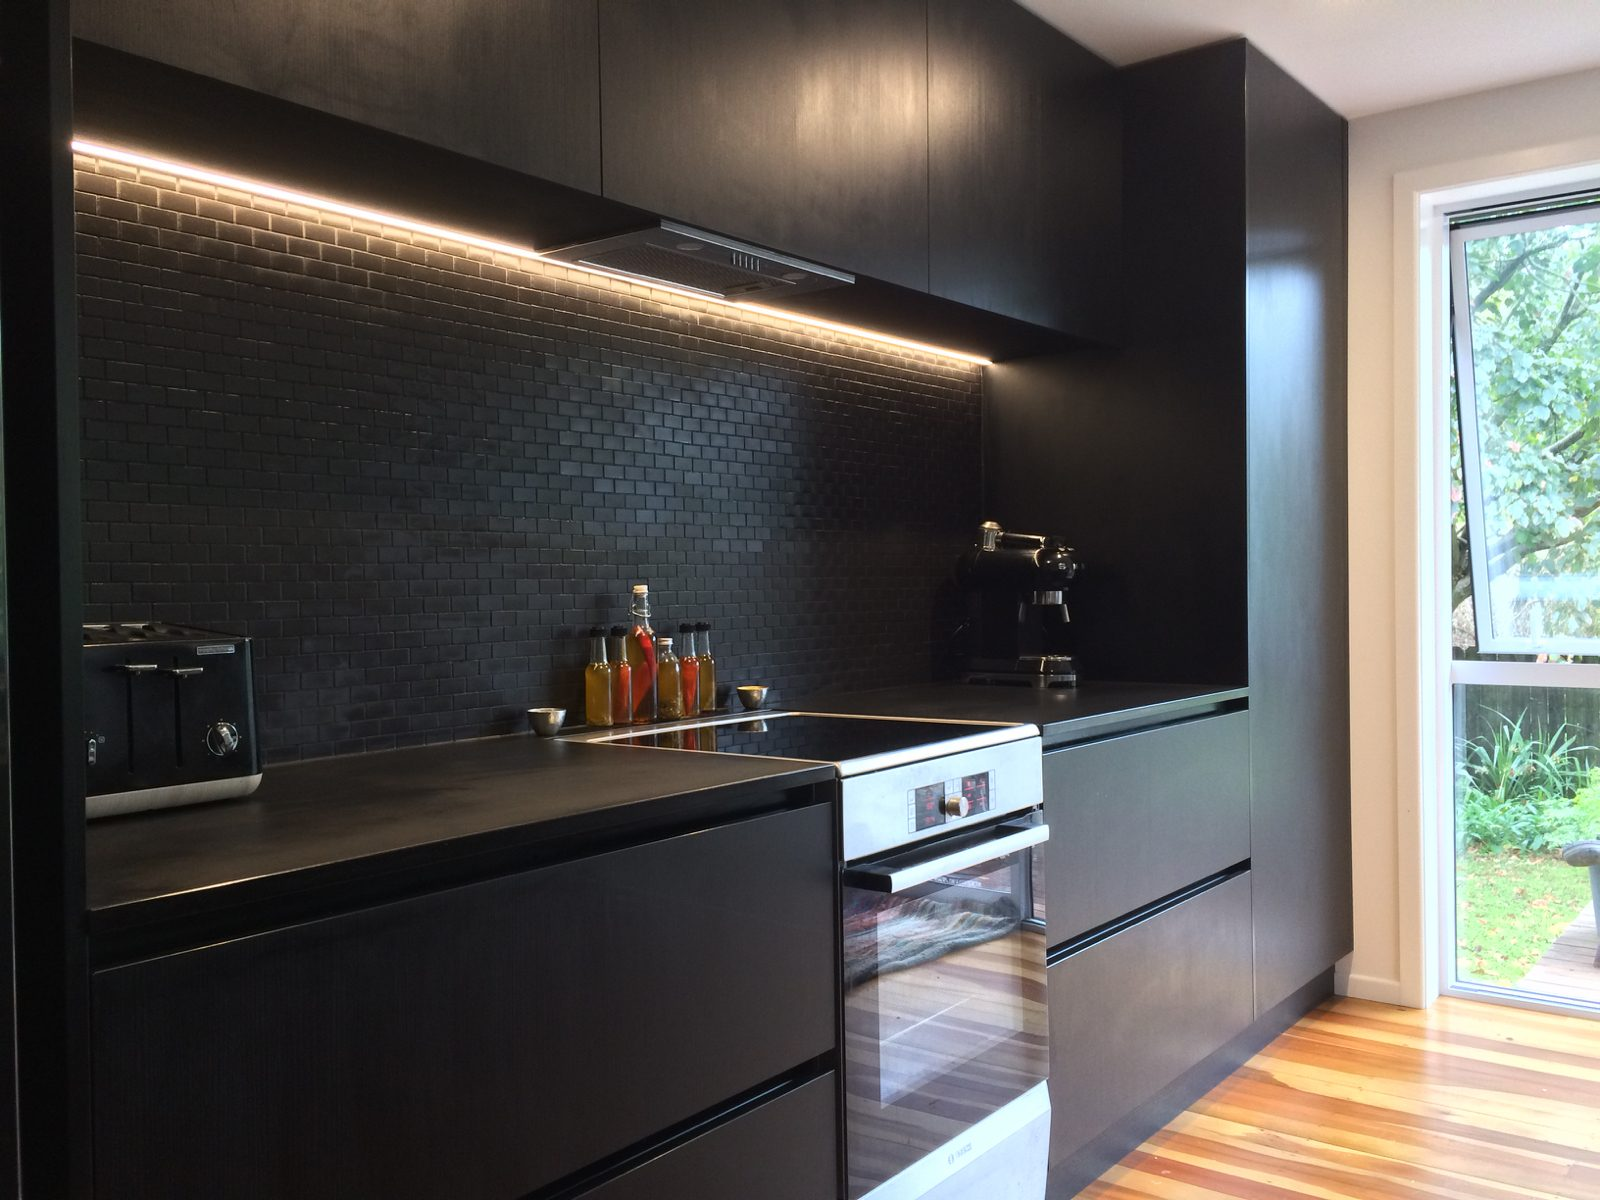 black kitchen with wooden floors